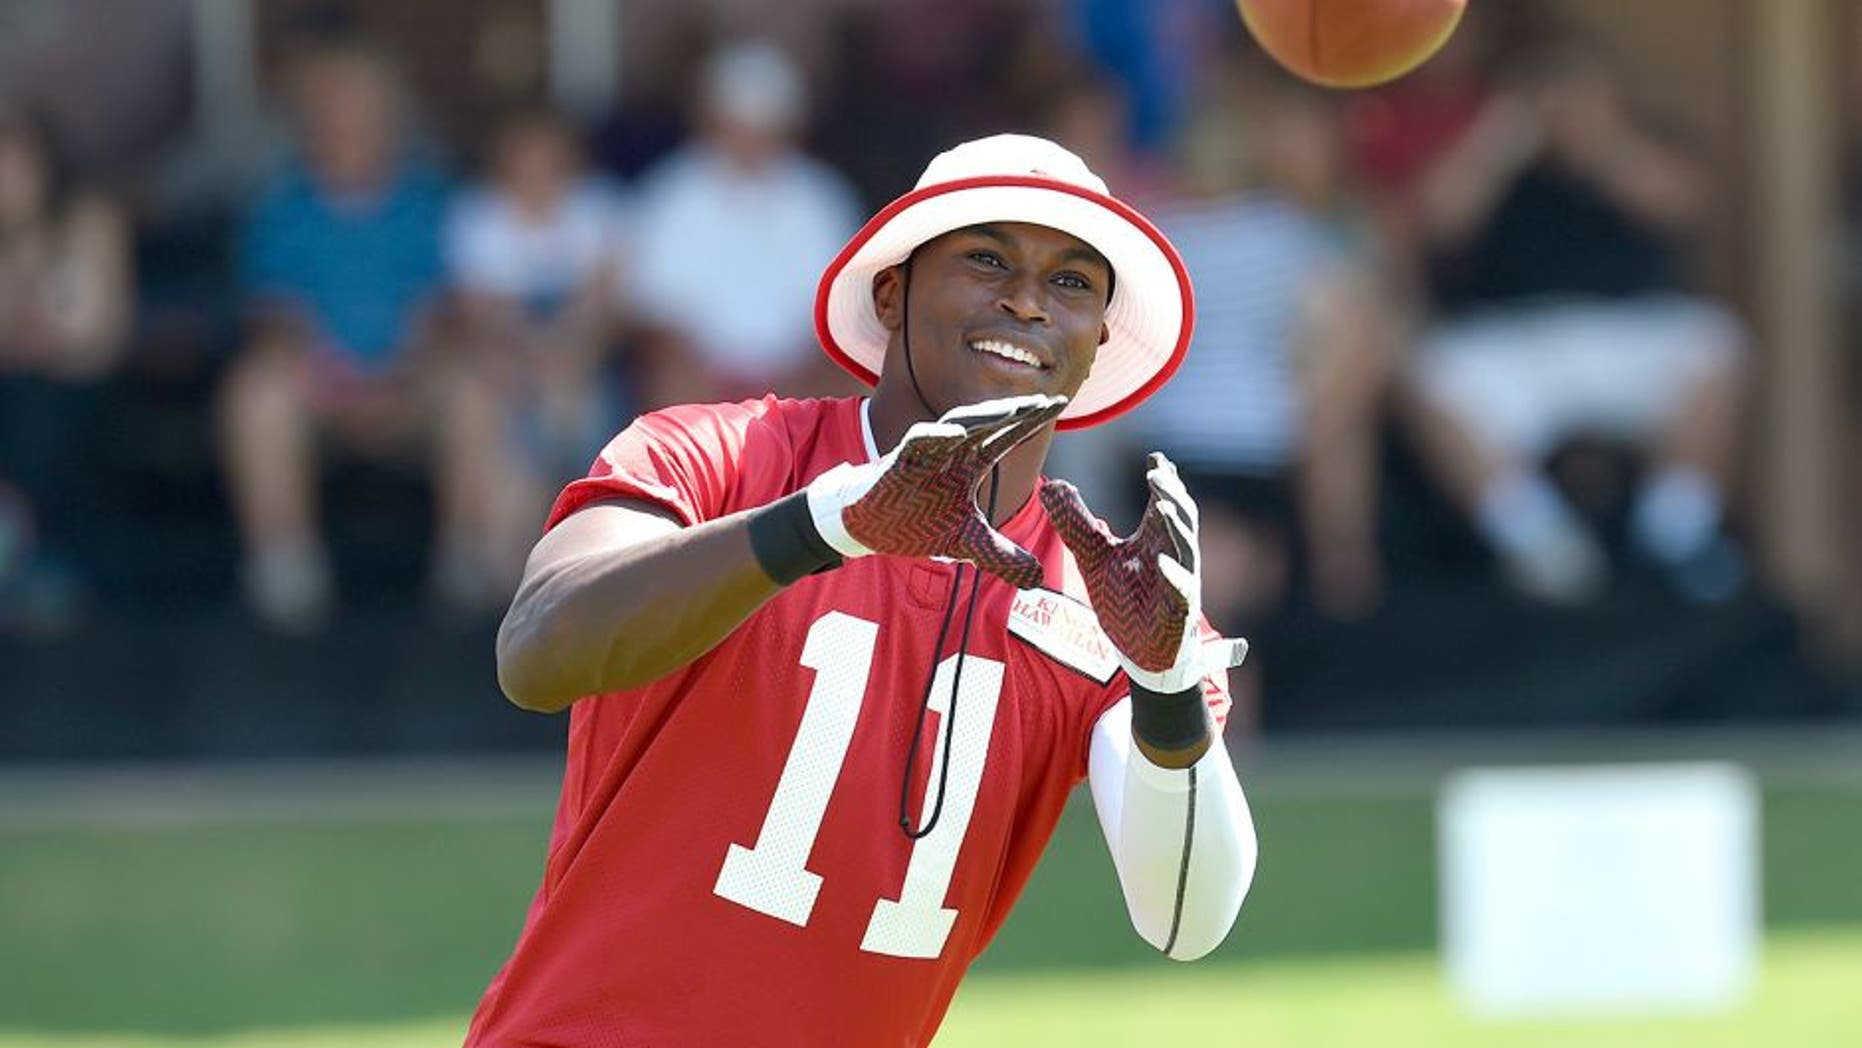 Jul 26, 2014; Atlanta, GA, USA; Atlanta Falcons wide receiver Julio Jones (11) reacts while catching passes on the field during training camp at Falcons Training Complex. Mandatory Credit: Dale Zanine-USA TODAY Sports